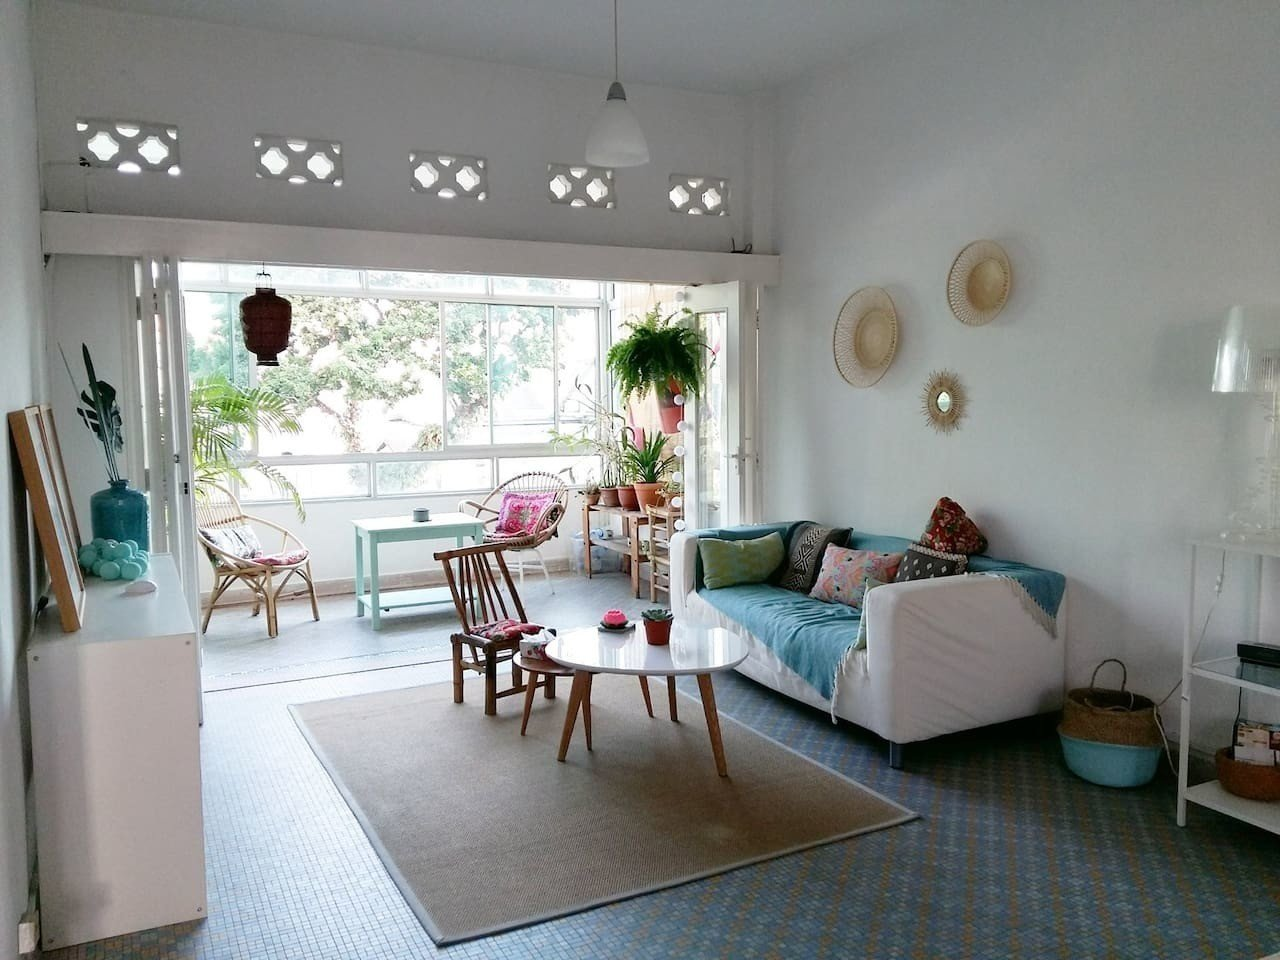 Located in a quiet neighborhood between the Novena and Newton MRT stations, this one-bedroom walk-up apartment has a breezy, nostalgic tropical feel that recalls 1970s homes in Singapore.  Photo 11 of 14 in Experience a Modern, Eclectic Side of Singapore at One of These 10 City Stays